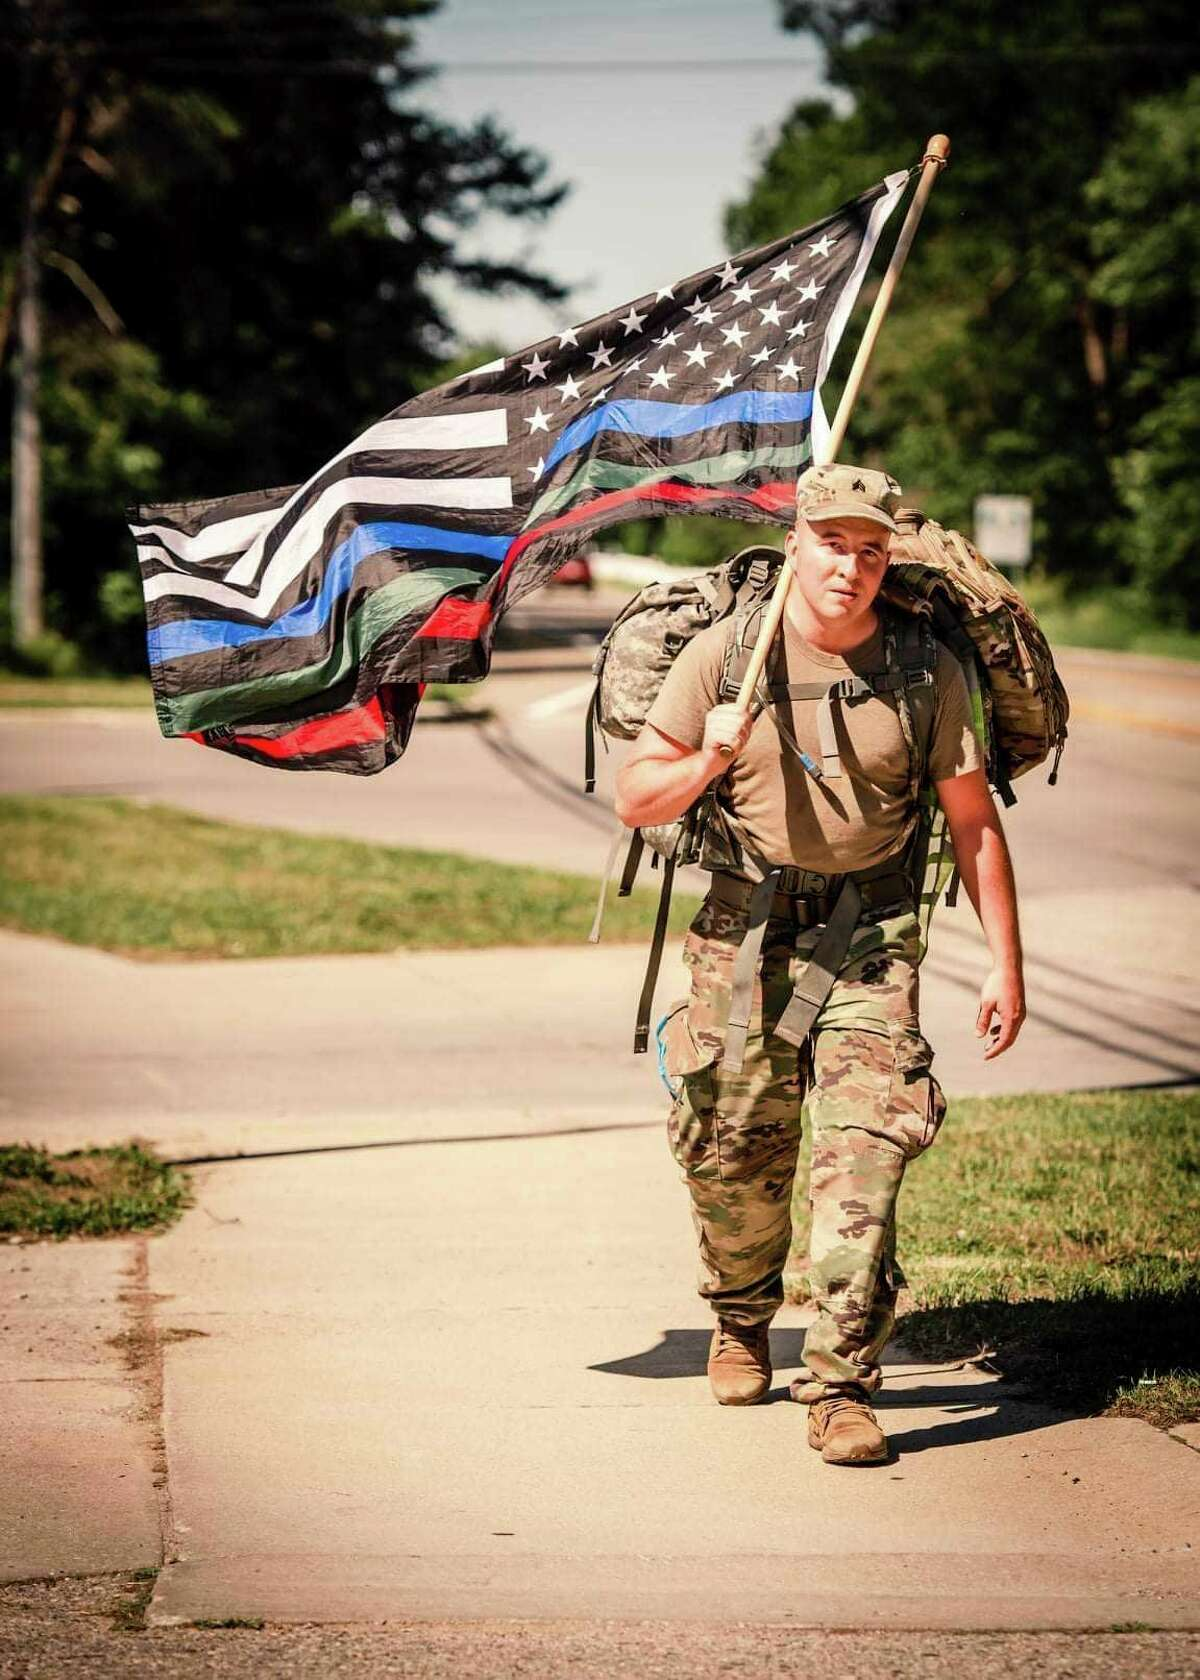 Mike Faupel walks along M-25 on the west side of the Thumb July 2 in support of veterans and first responders.(Mary Rose Jacobi Photography/Courtesy Photo)